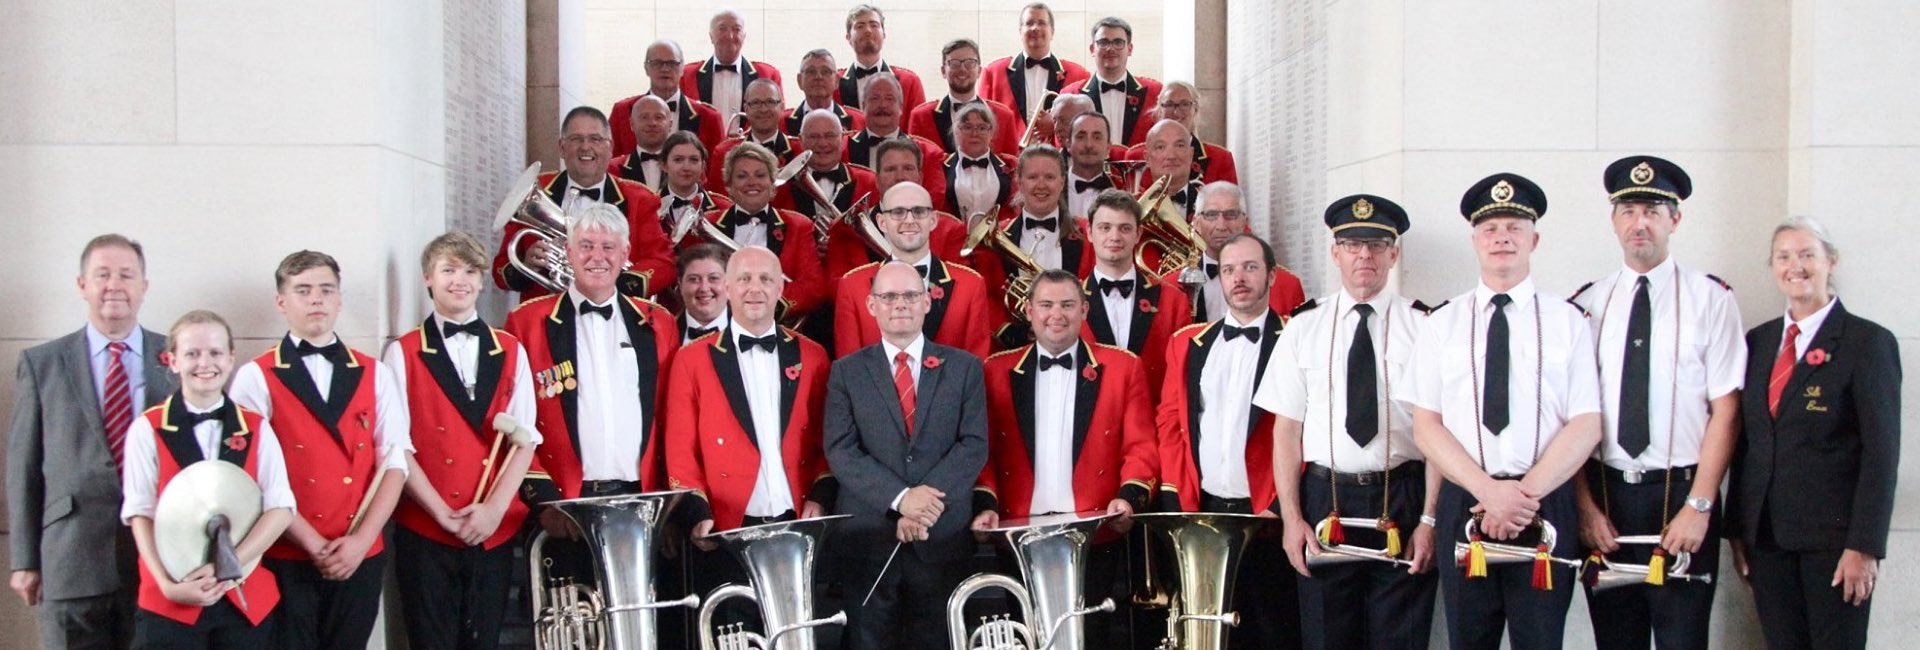 Silk Brass Band. A top class brass band based in Marton, Cheshire